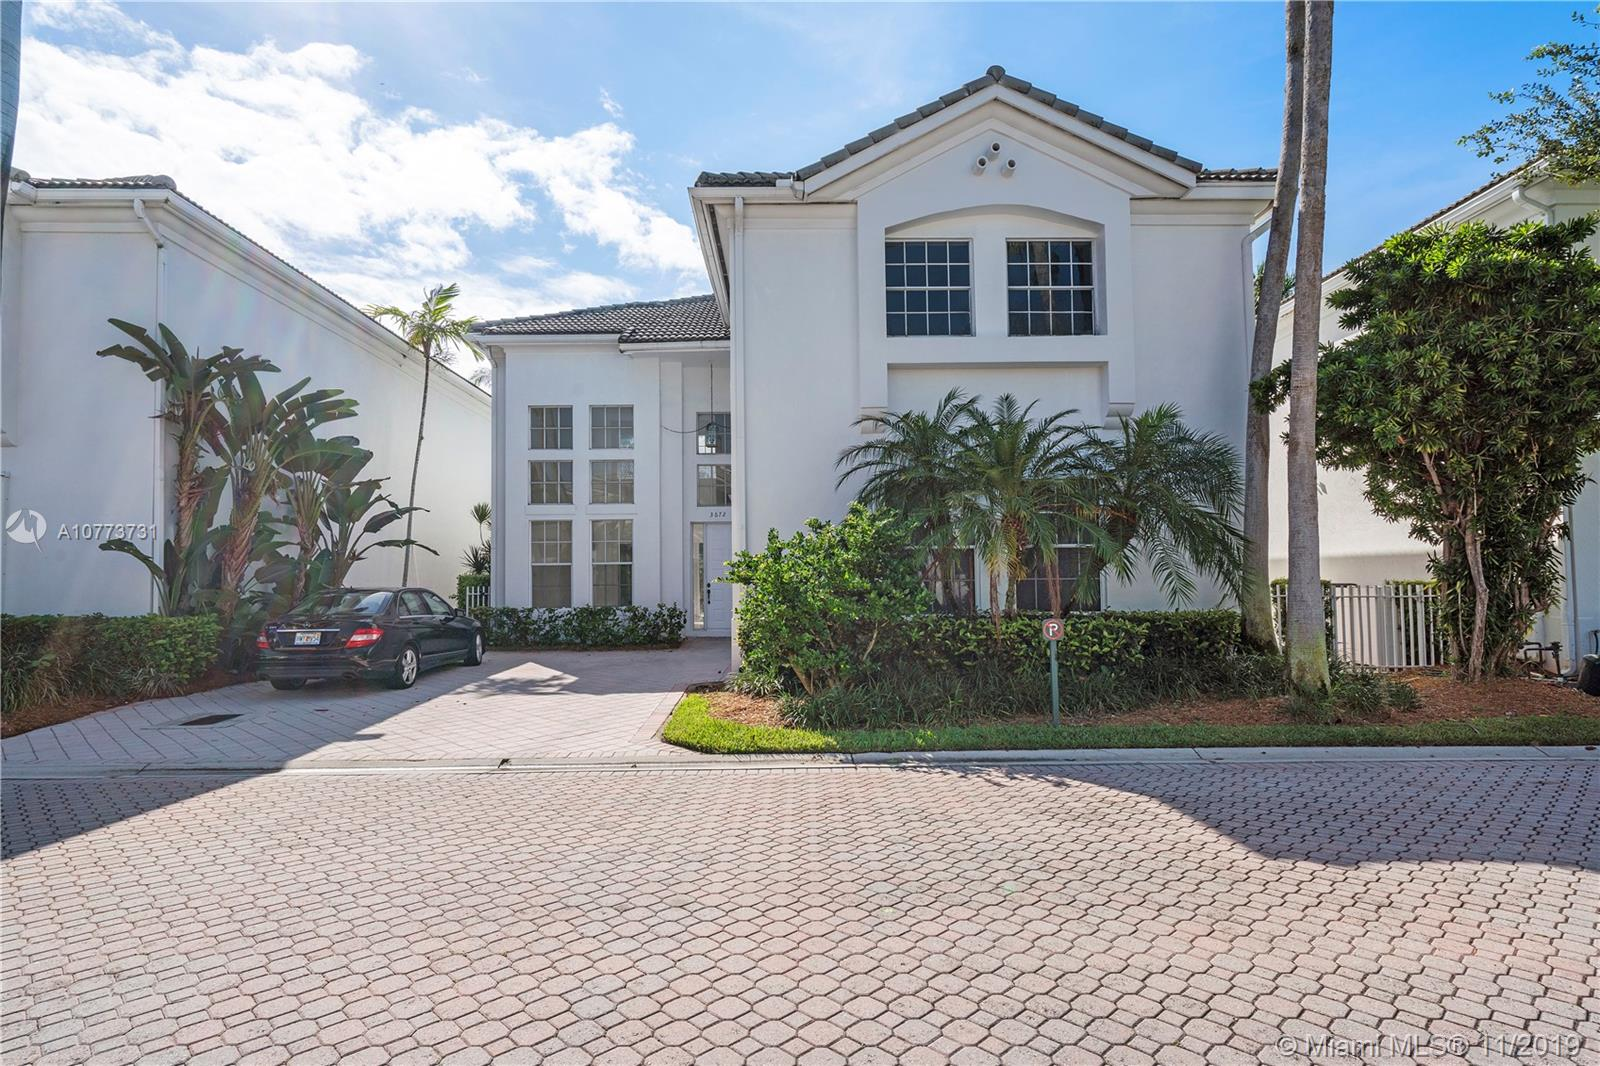 """Great Opportunity to own in Country Club Estates. This is the most affordable home in the neighborhood! This 3 bedrooms 2.5 Bathroom residence offers a lovely floor plan, marble and hardwood floors, high ceilings, beautiful natural light, a 2 car garage, private pool and so much more. Country Club Estates is perfectly located in the heart of Aventura. You can walk """"the circle"""", you are close to the beach, fine dining, world class shopping, A+ schools and easy access to International Airports!"""